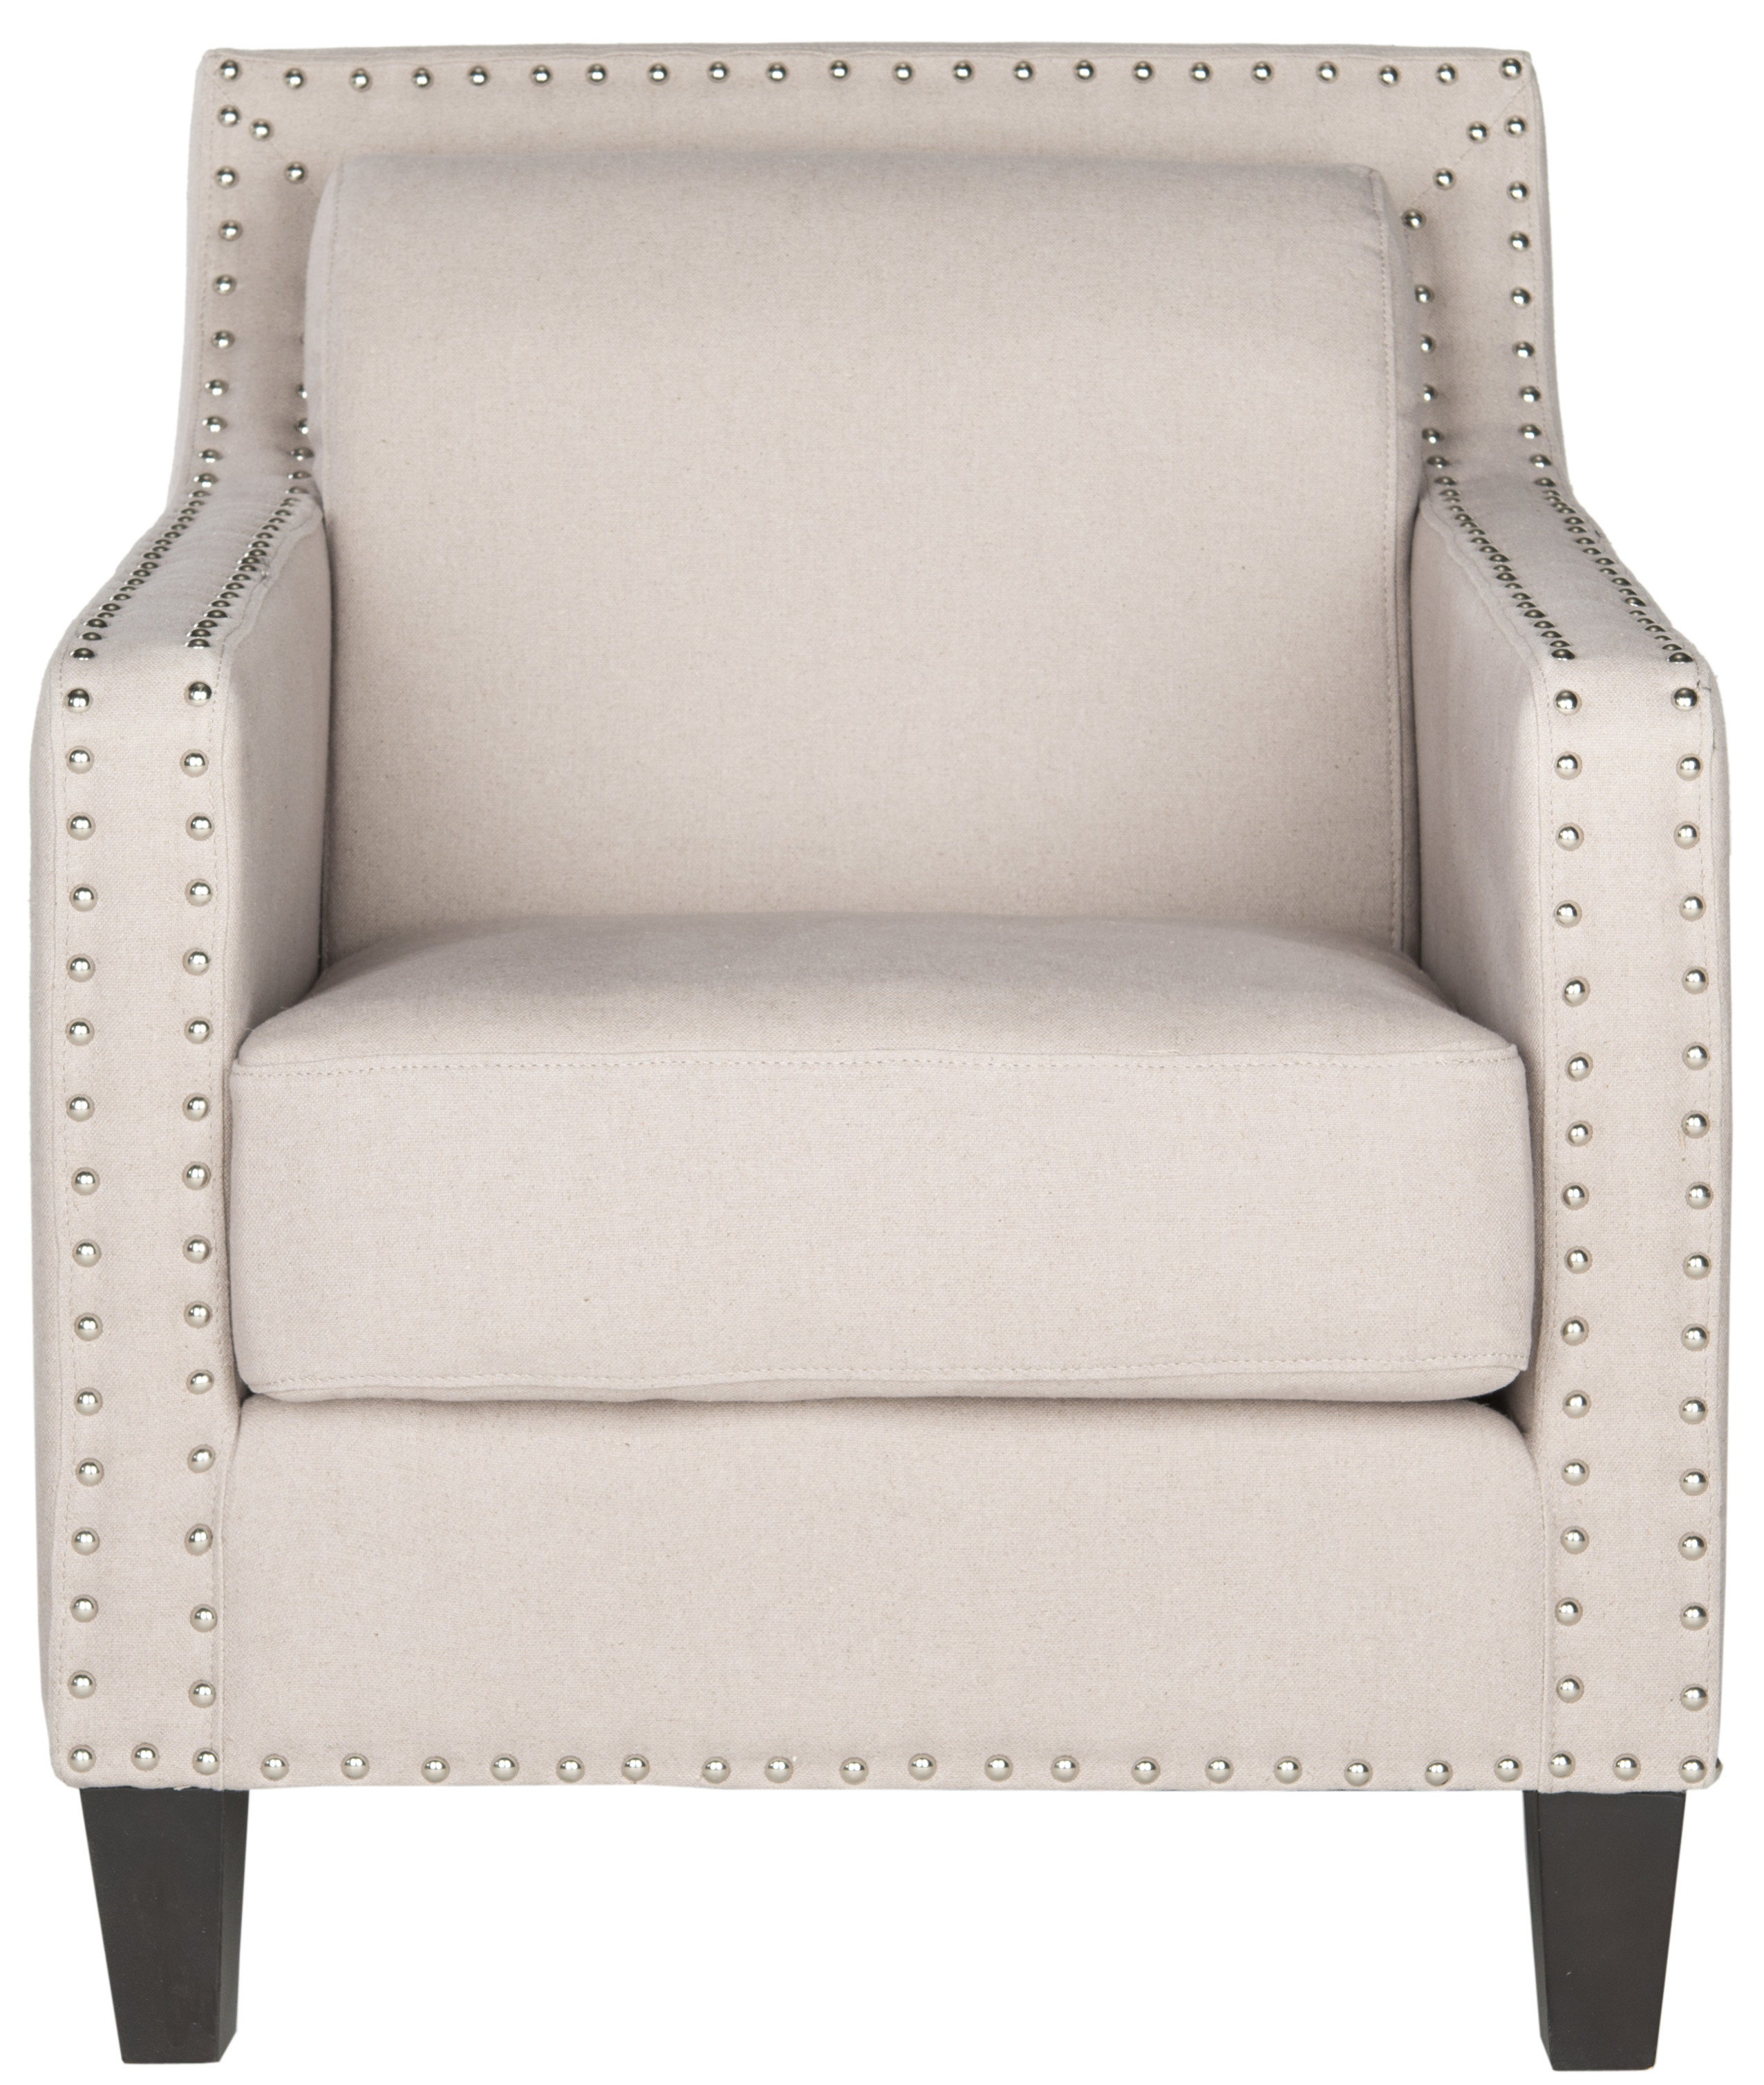 Wayfair Within Best And Newest Lucy Grey Sofa Chairs (View 9 of 20)